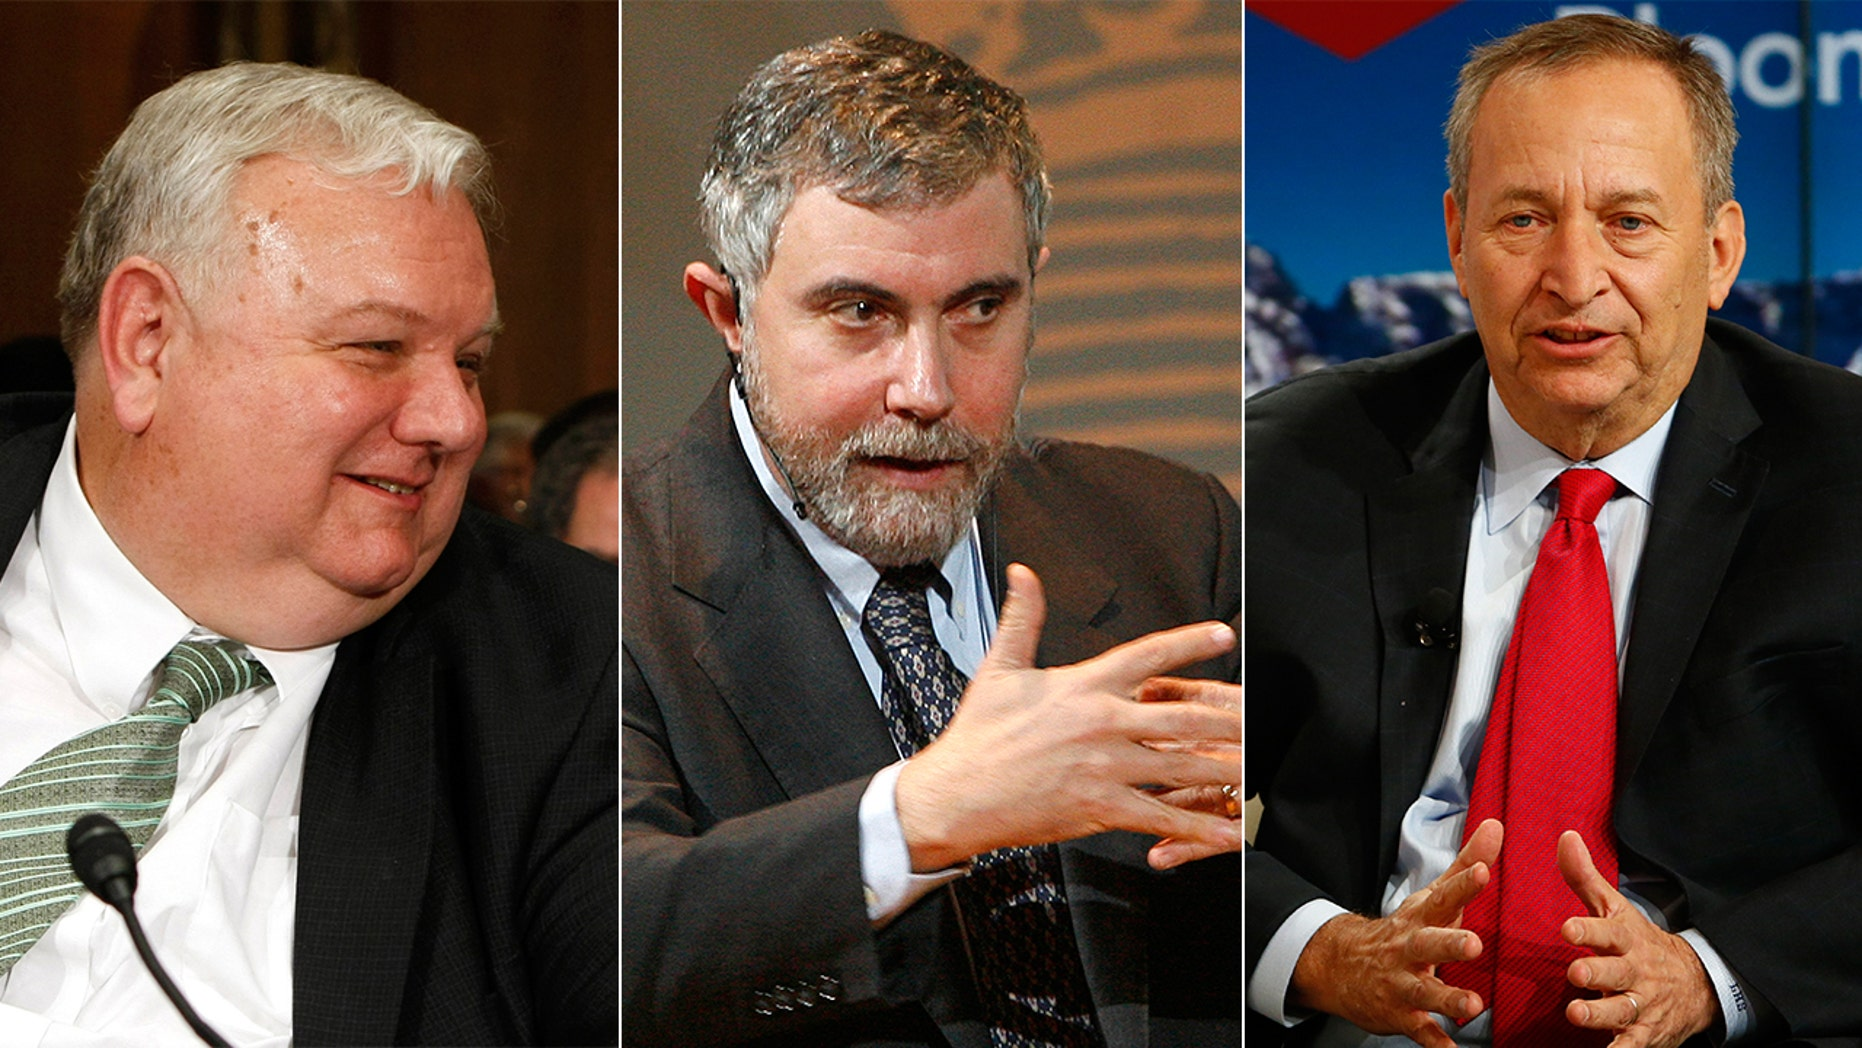 Larry Lindsey (left), the former director of the National Economic Council under George W. Bush, says he's willing to bet $60,000 with liberal economists Paul Krugman (middle) and Larry Summers (right) that their doomsday predictions about President Trump's tax reform proposals will turn out to be wrong.